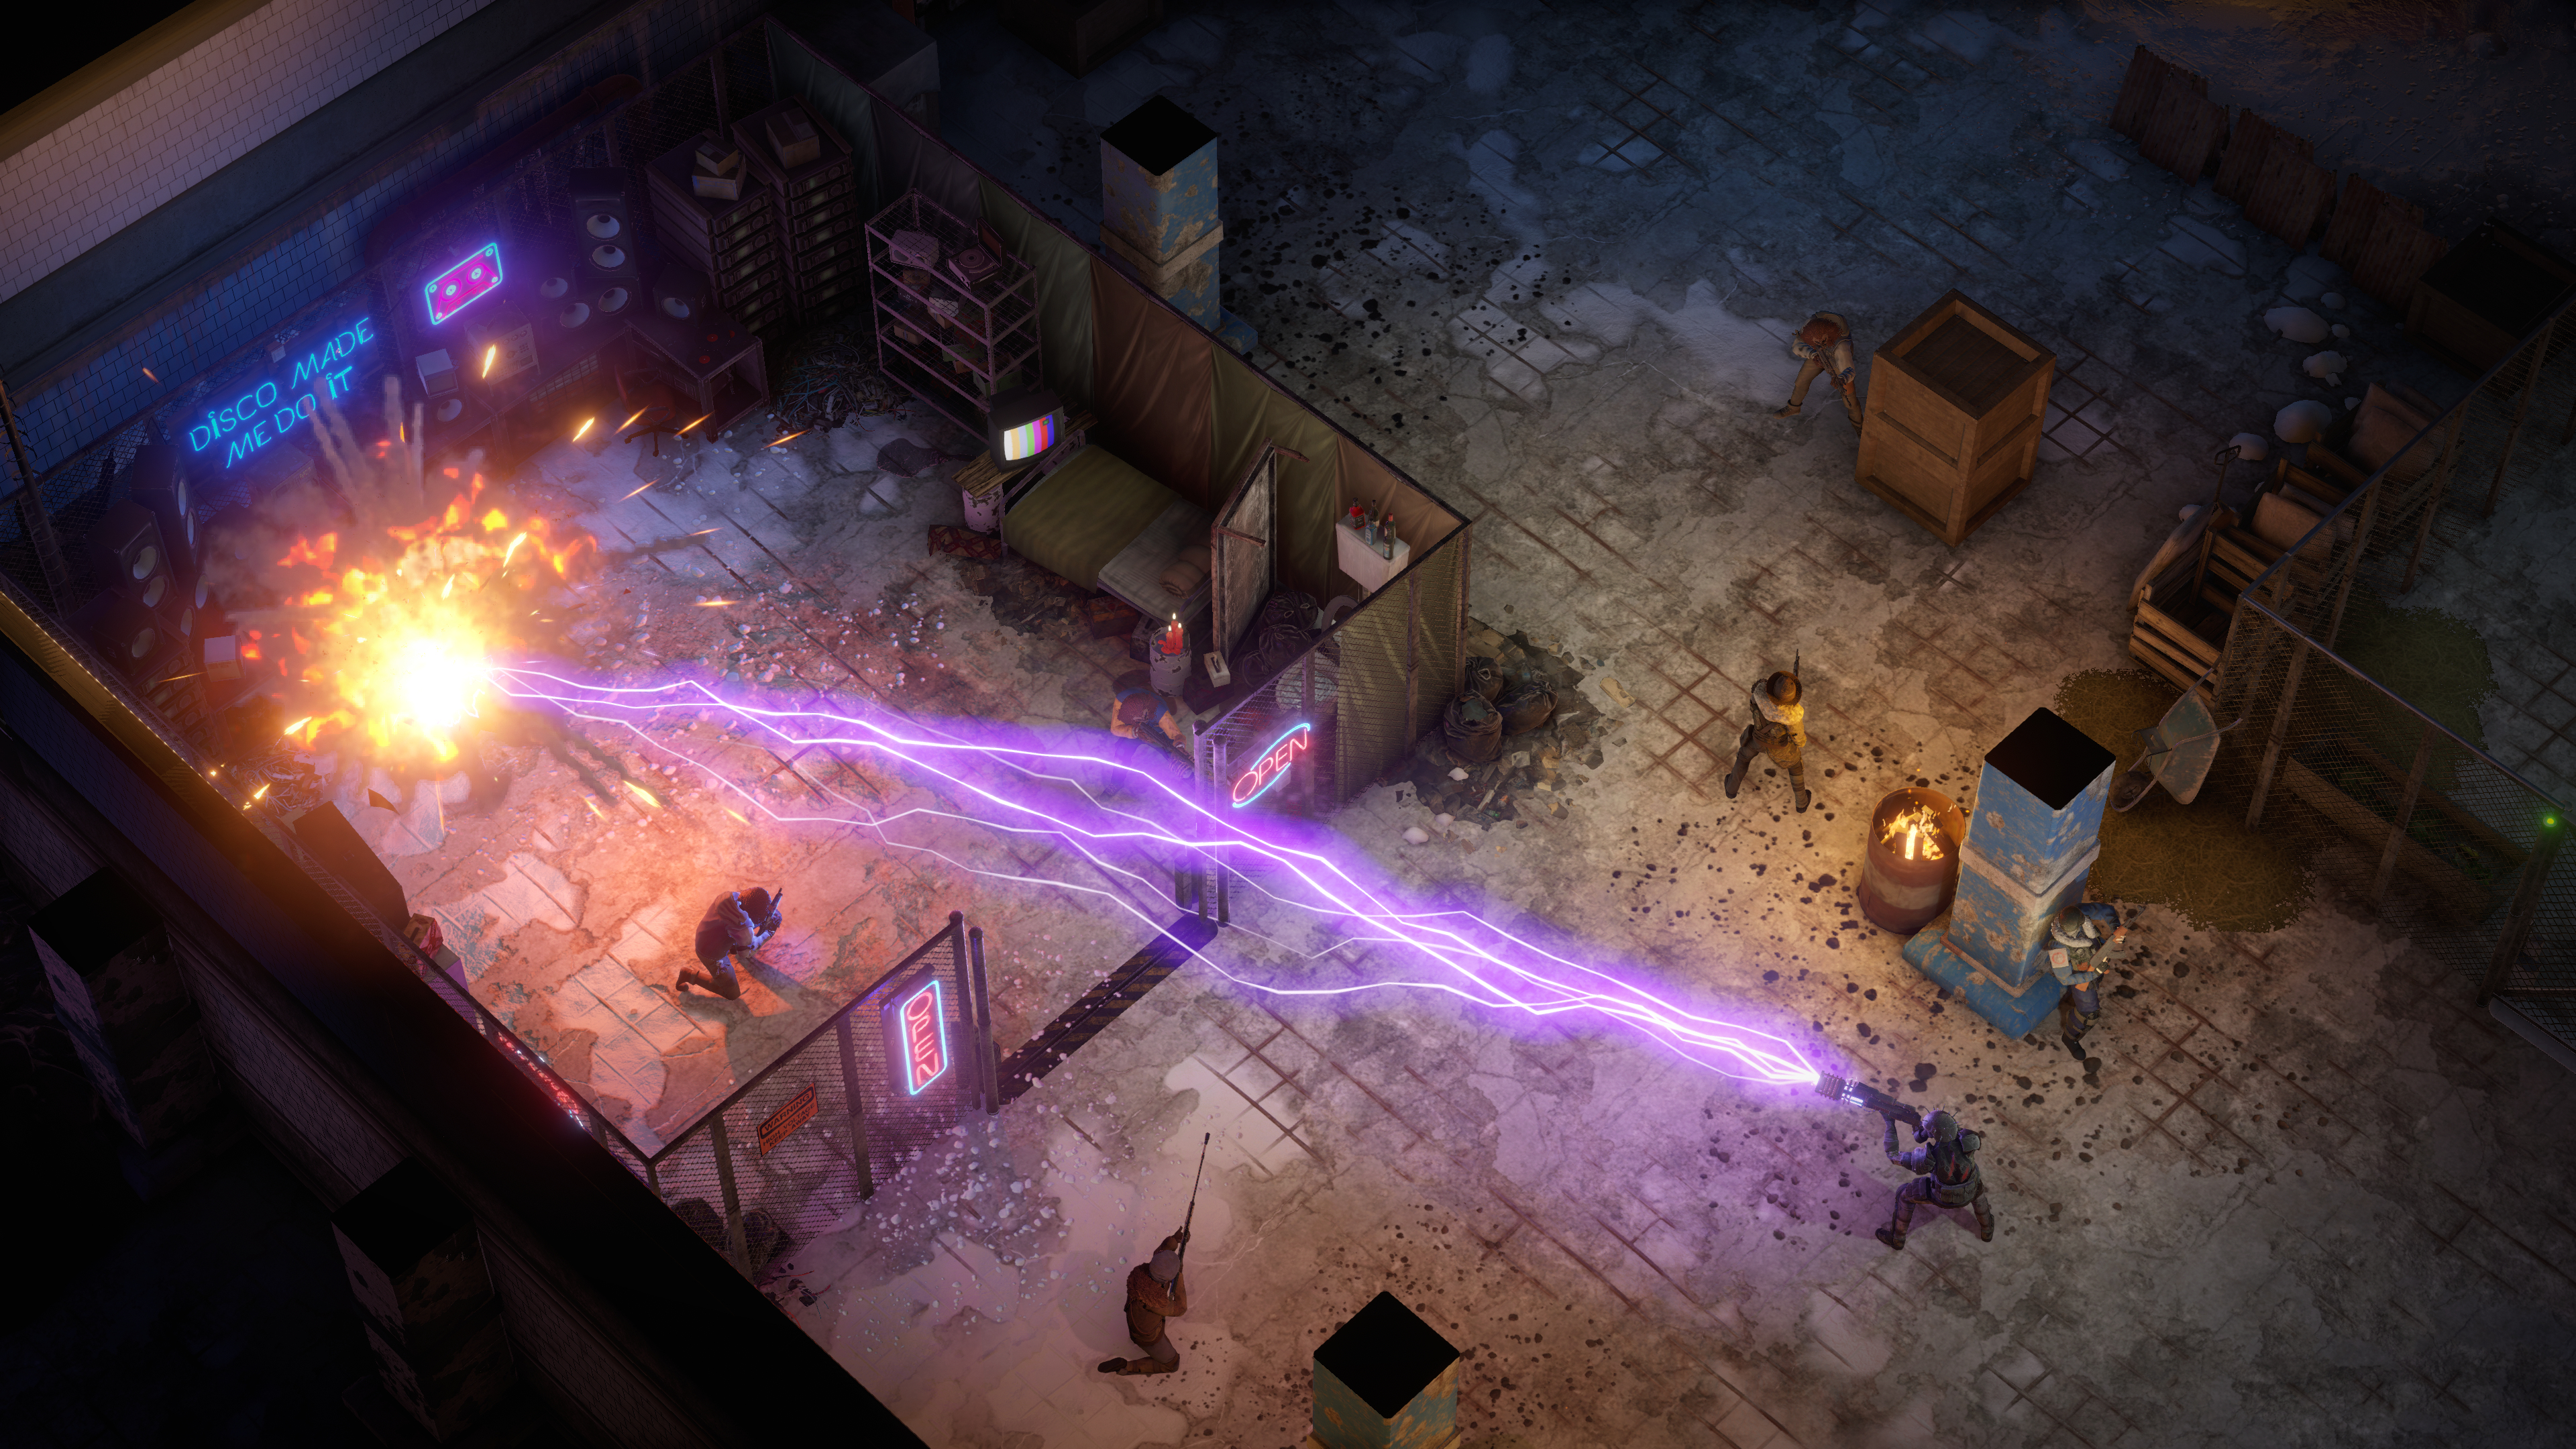 Screenshot from Wasteland 3, with a character shooting a purple laser beam